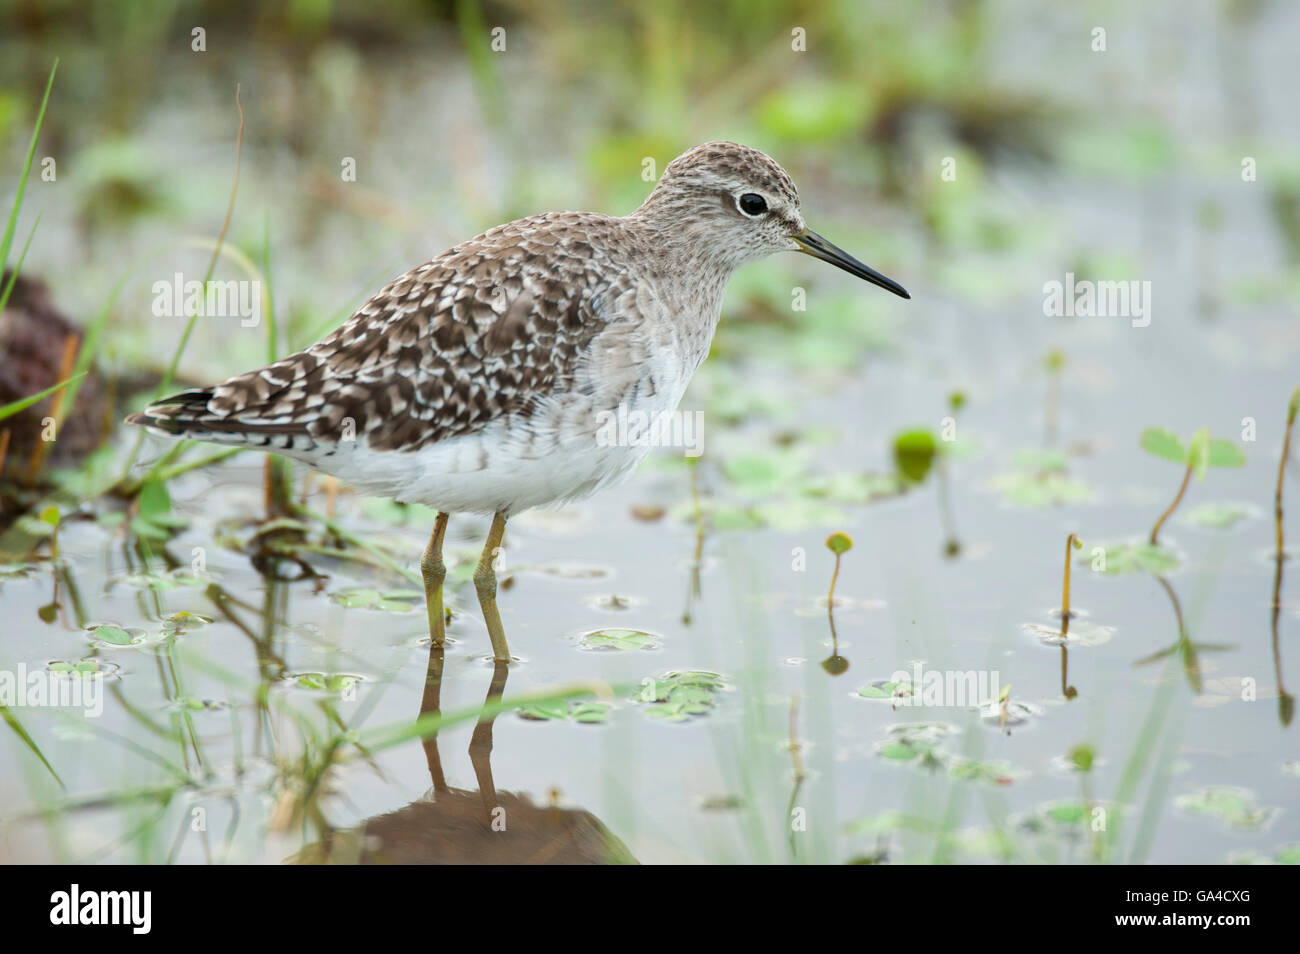 Wood sandpiper, Triga glareola, Lake Manyara National Park, Tanzania - Stock Image